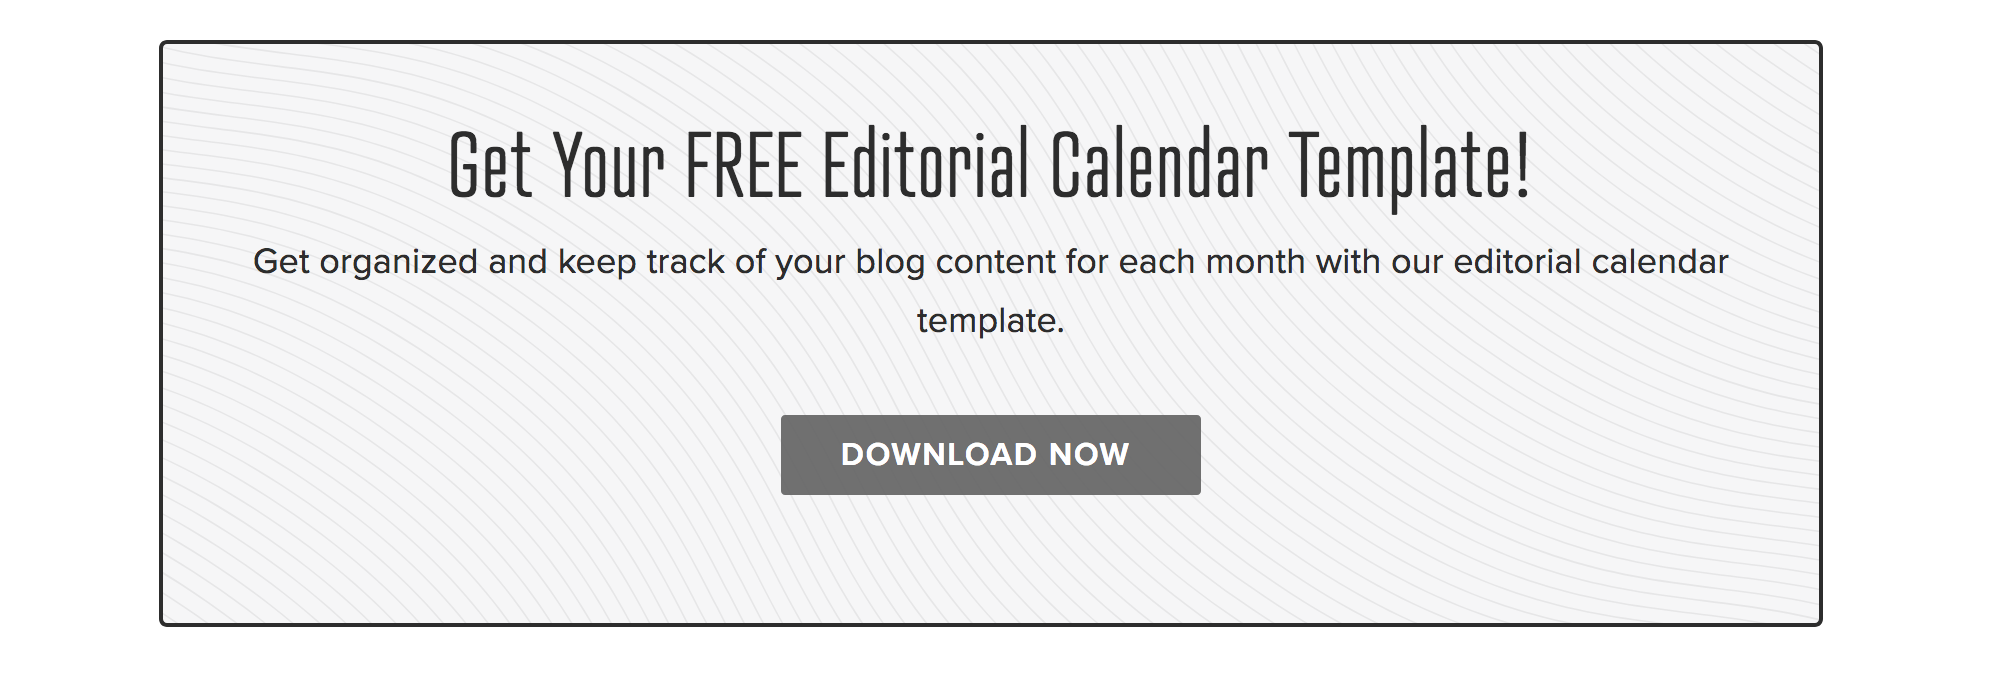 Free editorial calendar template for financial planning blogs